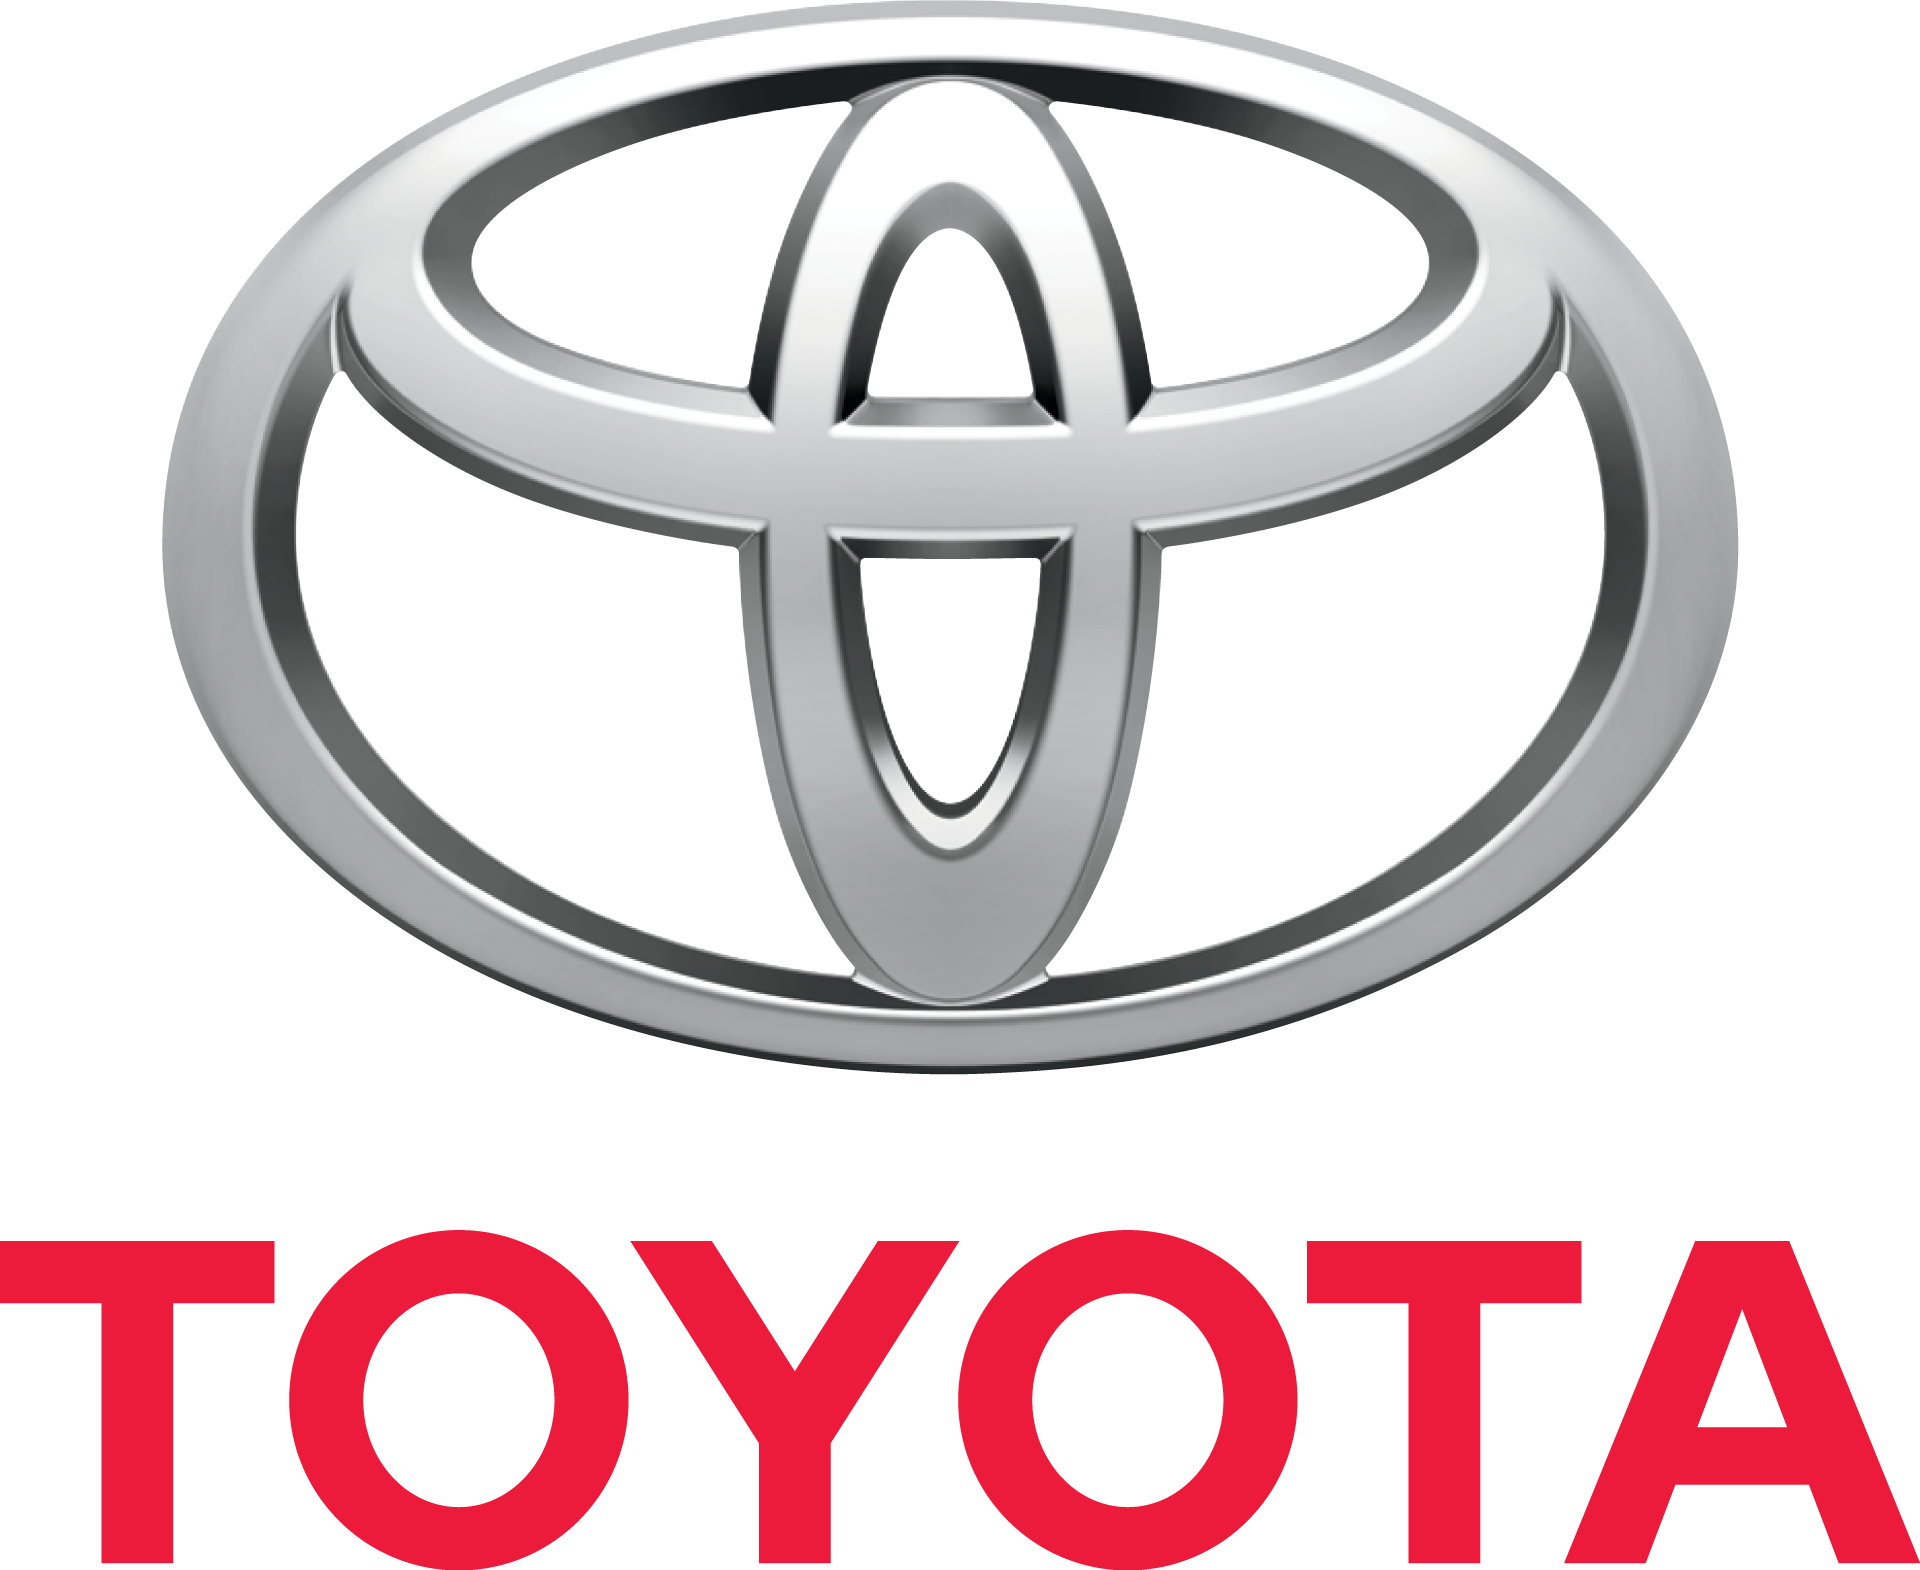 2017 Toyota Yaris Dealer Serving San Diego besides Image Logo Toyota in addition Mas Barato Y Mas Potente Que El Qashqai Ssangyong Korando 2014 further 2017 Toyota Land Cruiser Vxs White Edition 7390260146945077 in addition Double Din Android In Dash Navigation Dvd Player 1996 2009 Toyota Prado With Radio Auto A V 3g Wifi Bluetooth Aux Mirror Link Obd2 Rearview Camera S126003e. on toyota corolla bluetooth